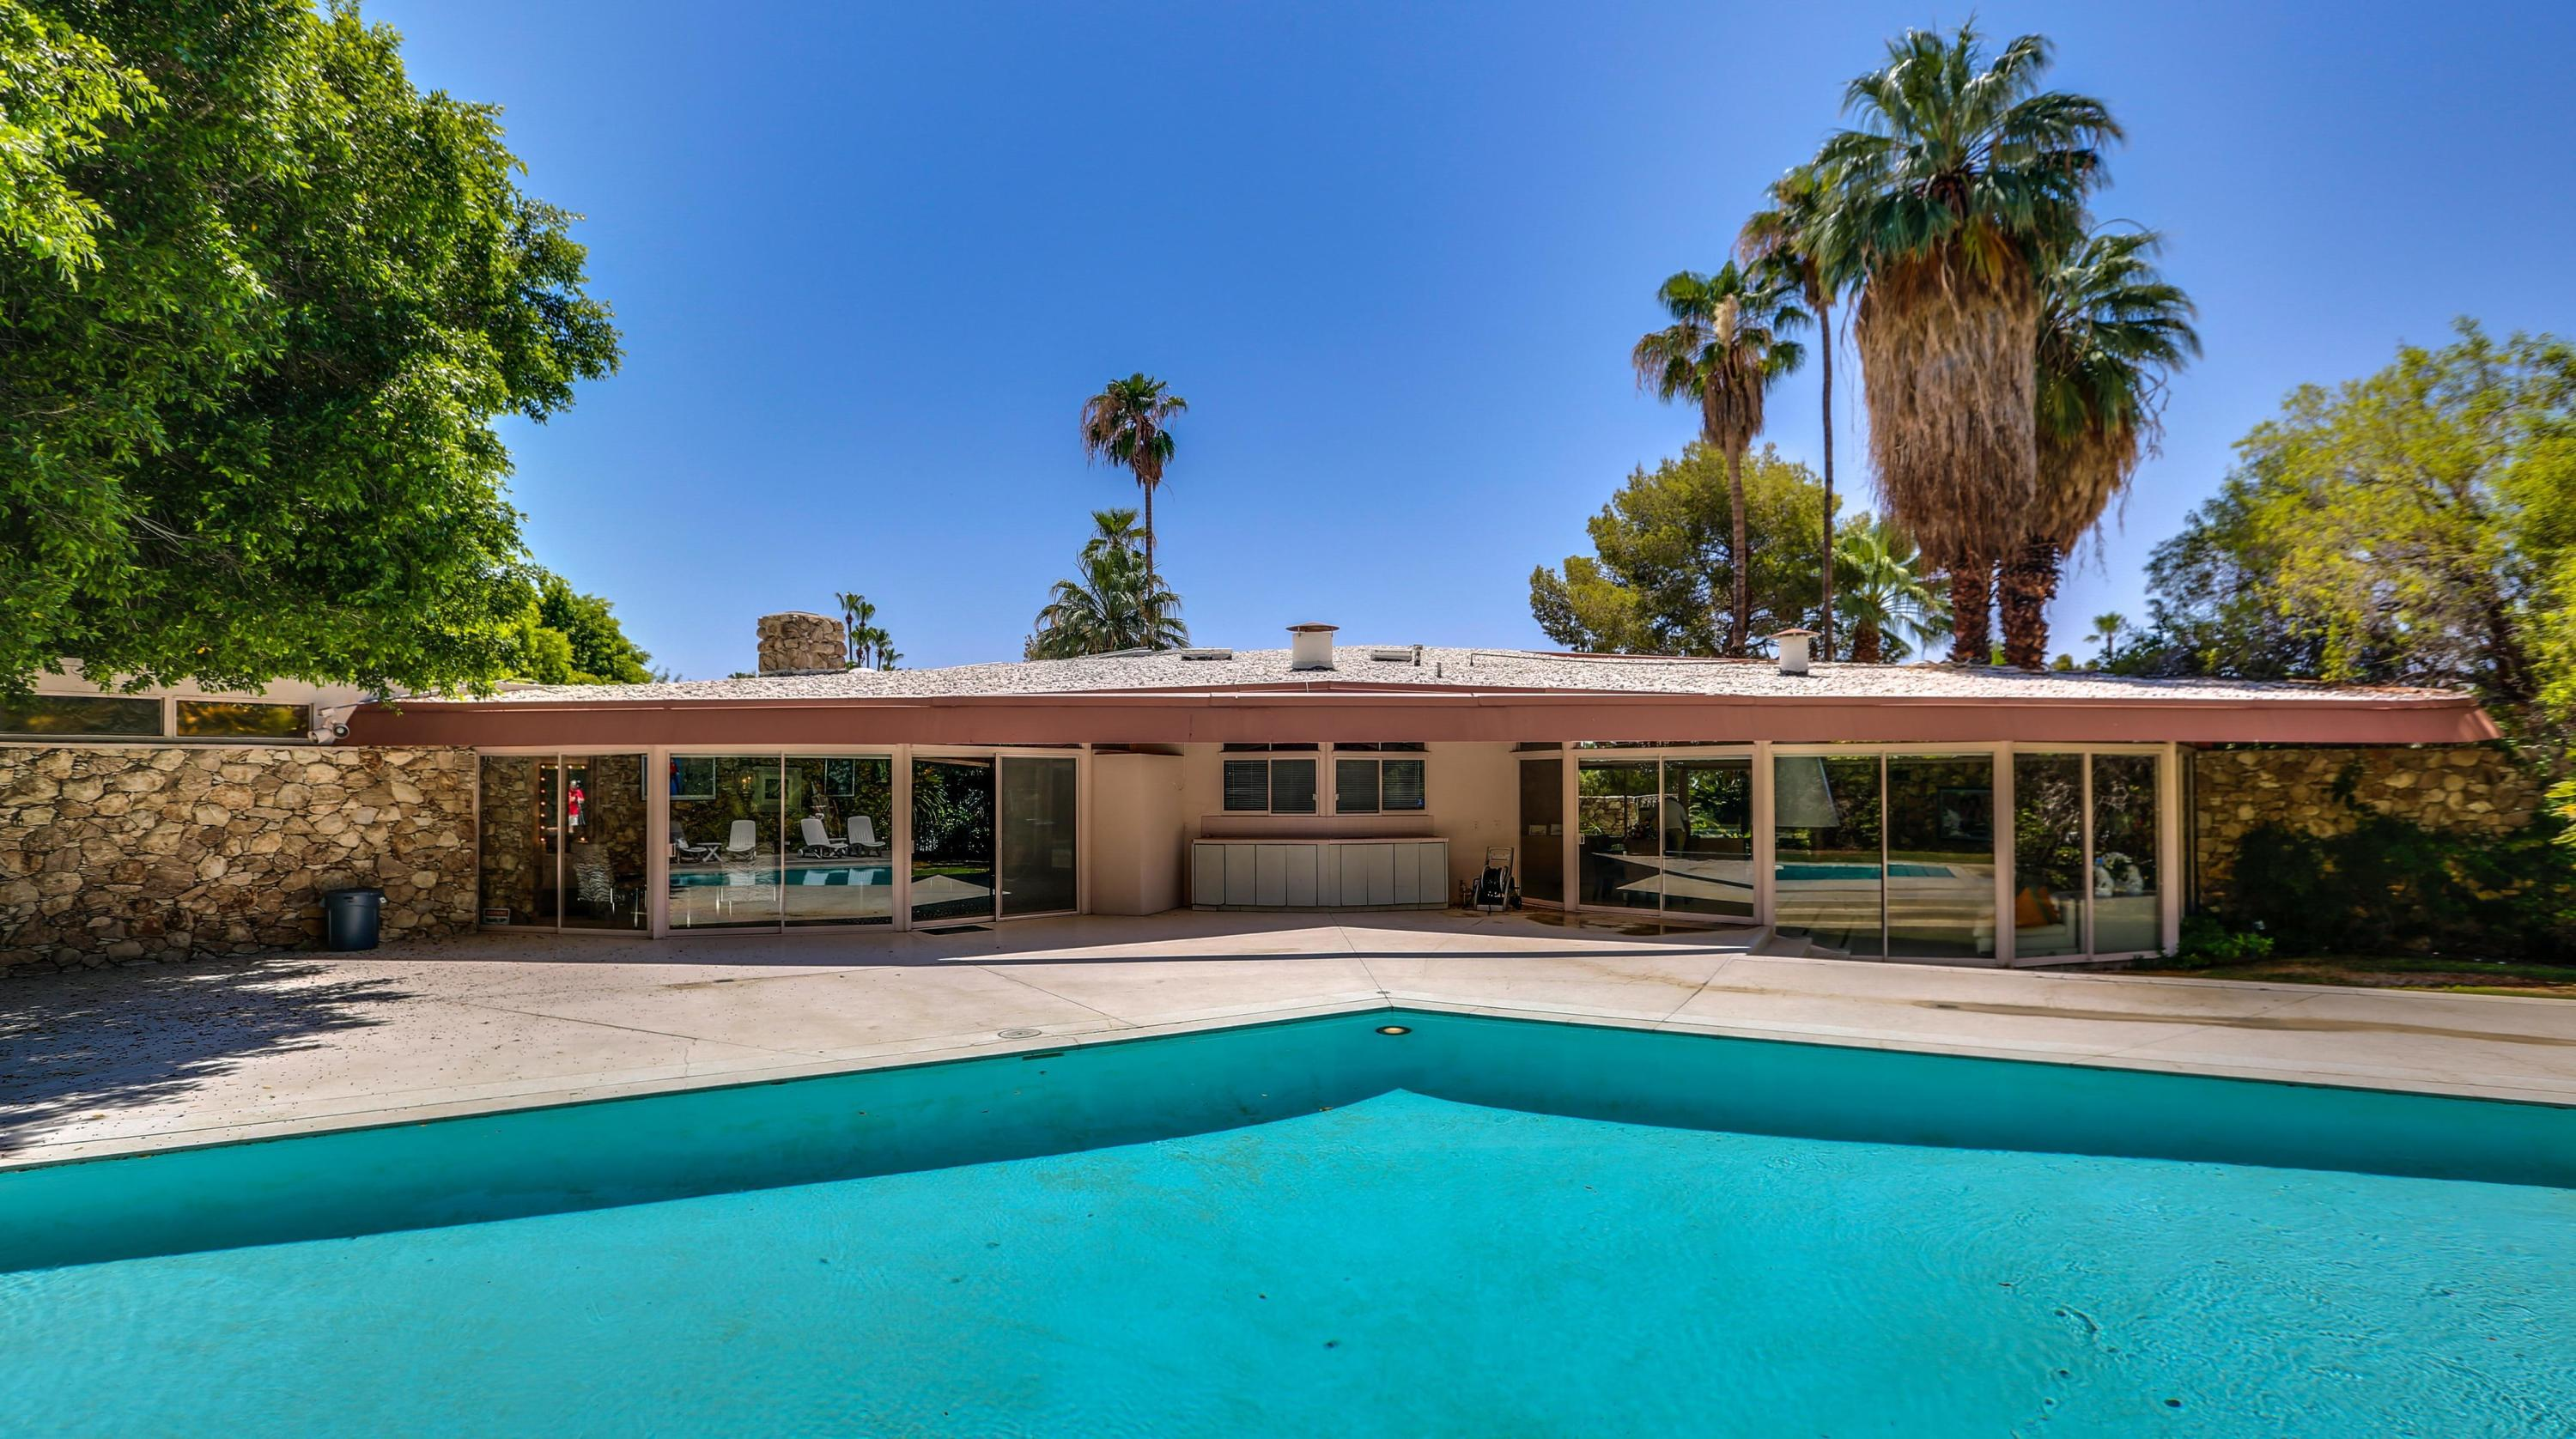 1350 Ladera Circle, Palm Springs, California 92262, 5 Bedrooms Bedrooms, ,5 BathroomsBathrooms,Residential,For Sale,1350 Ladera Circle,219033888